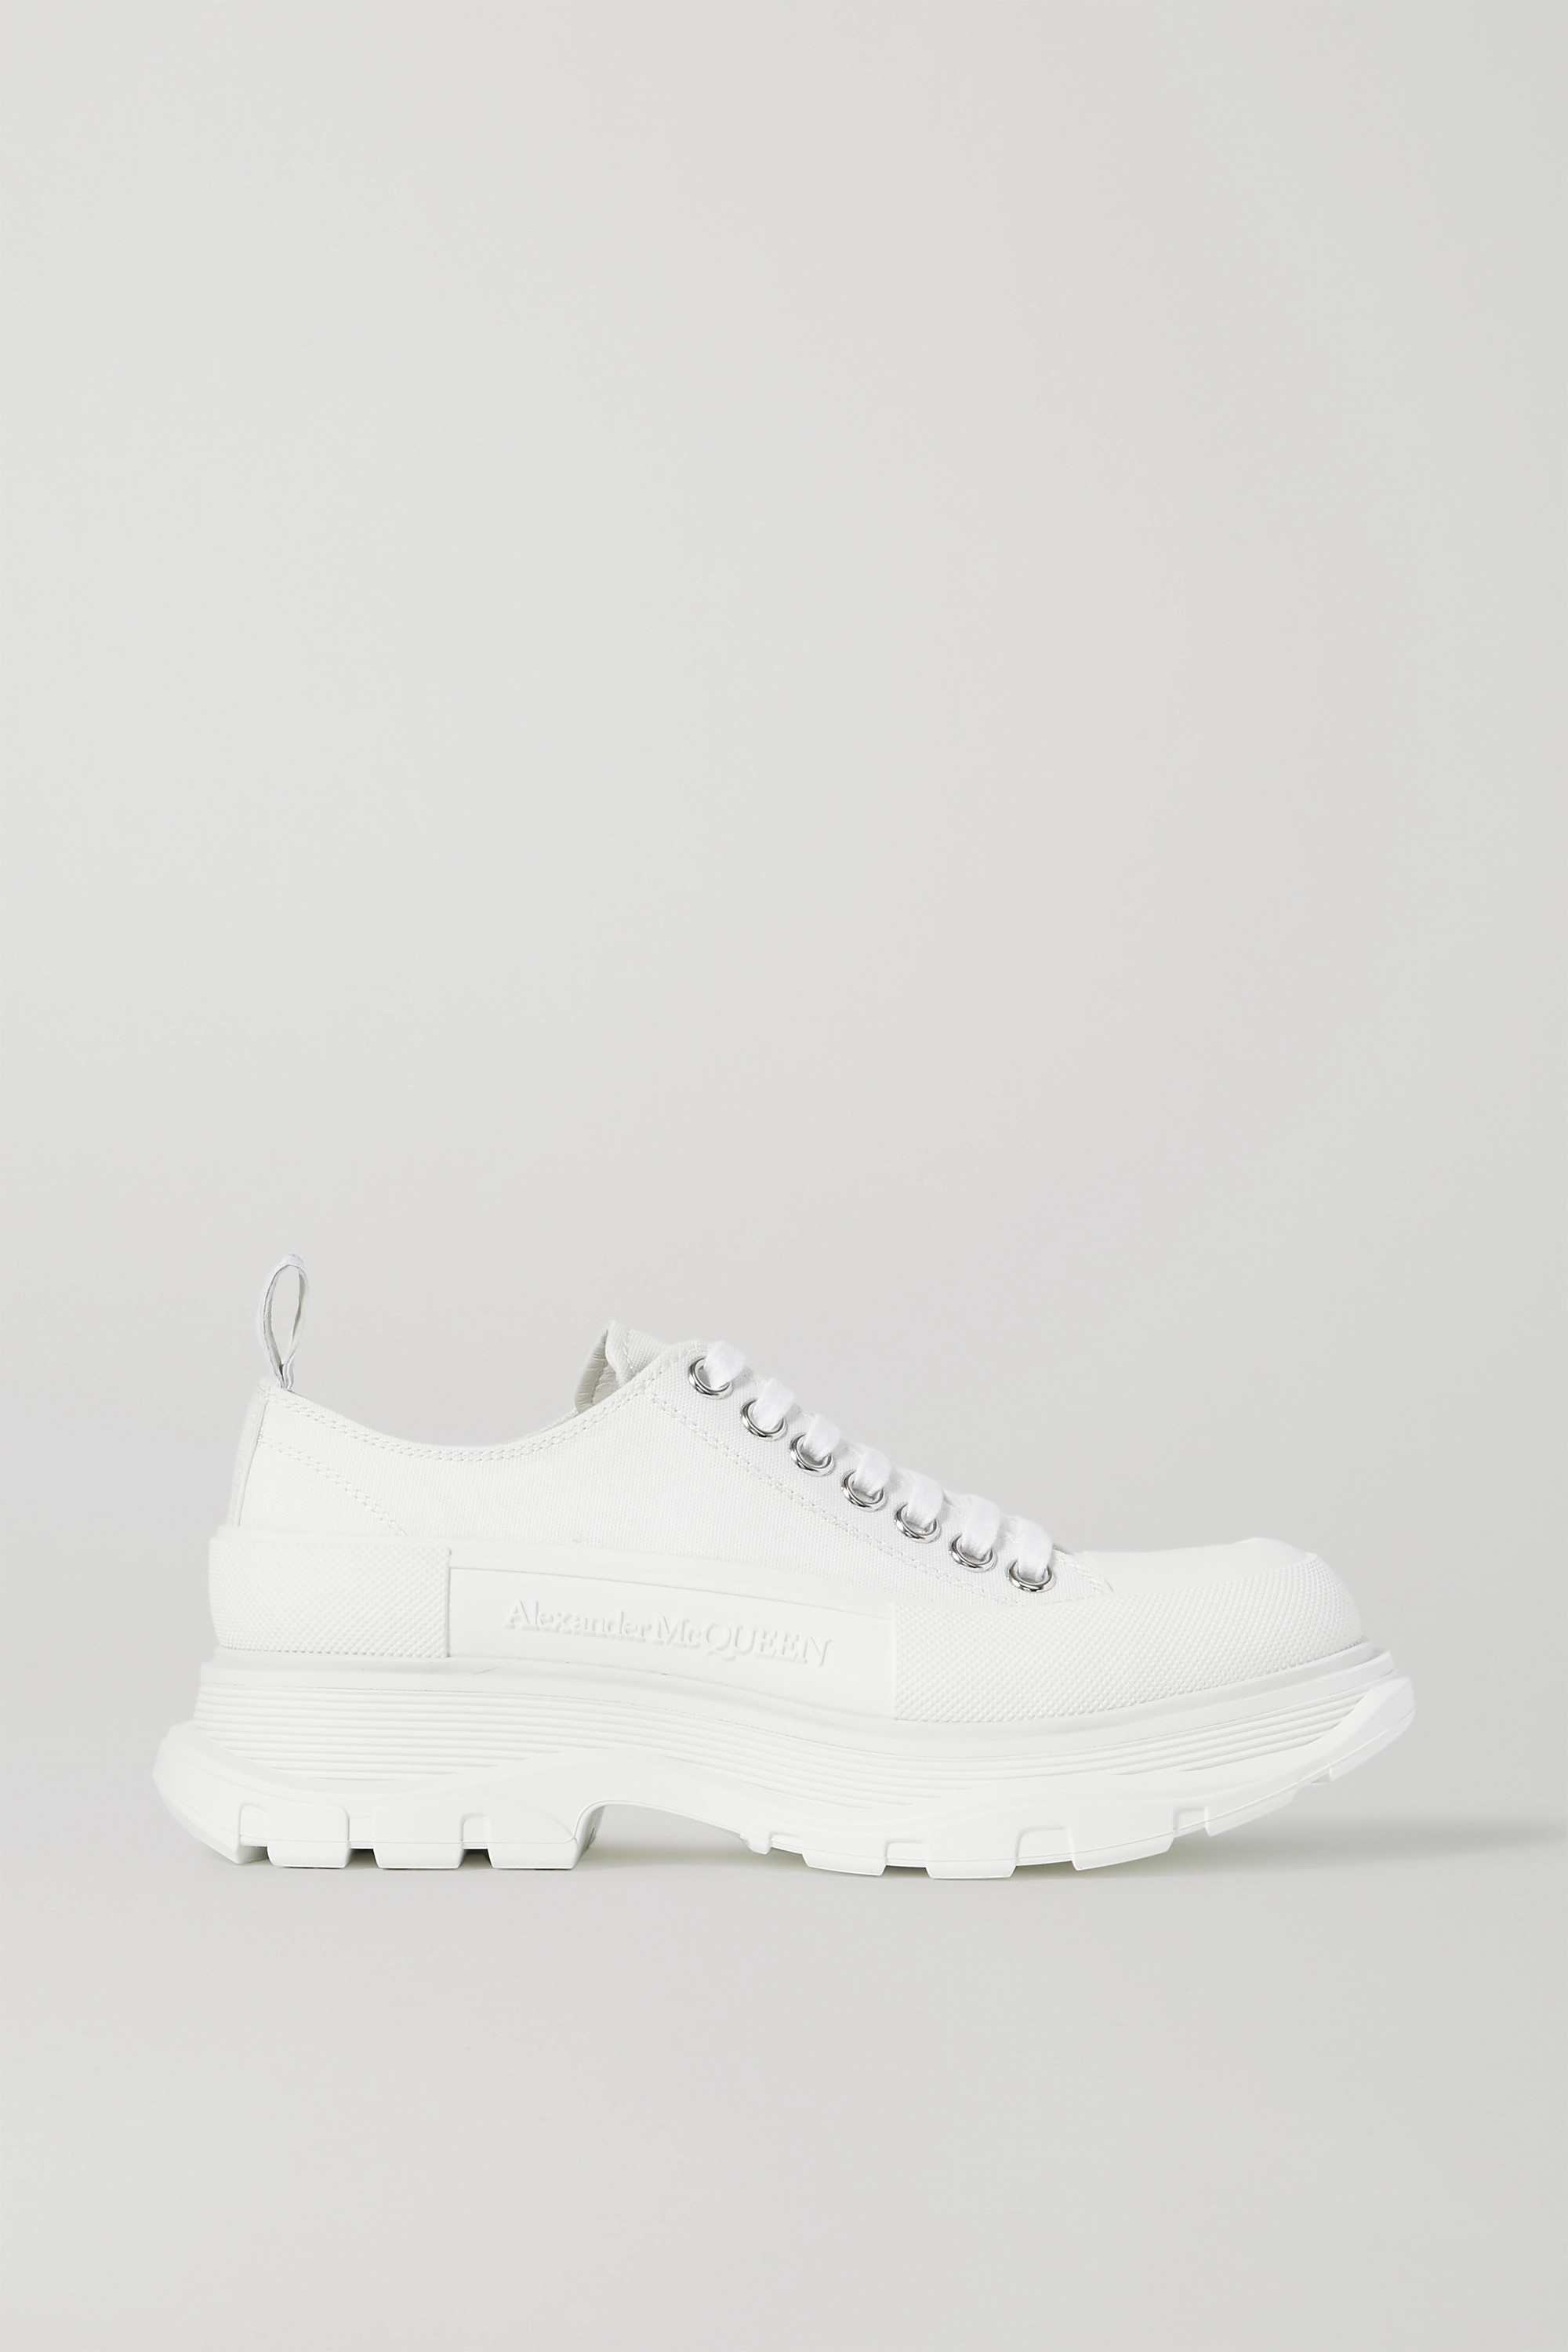 Alexander McQueen Canvas exaggerated-sole sneakers